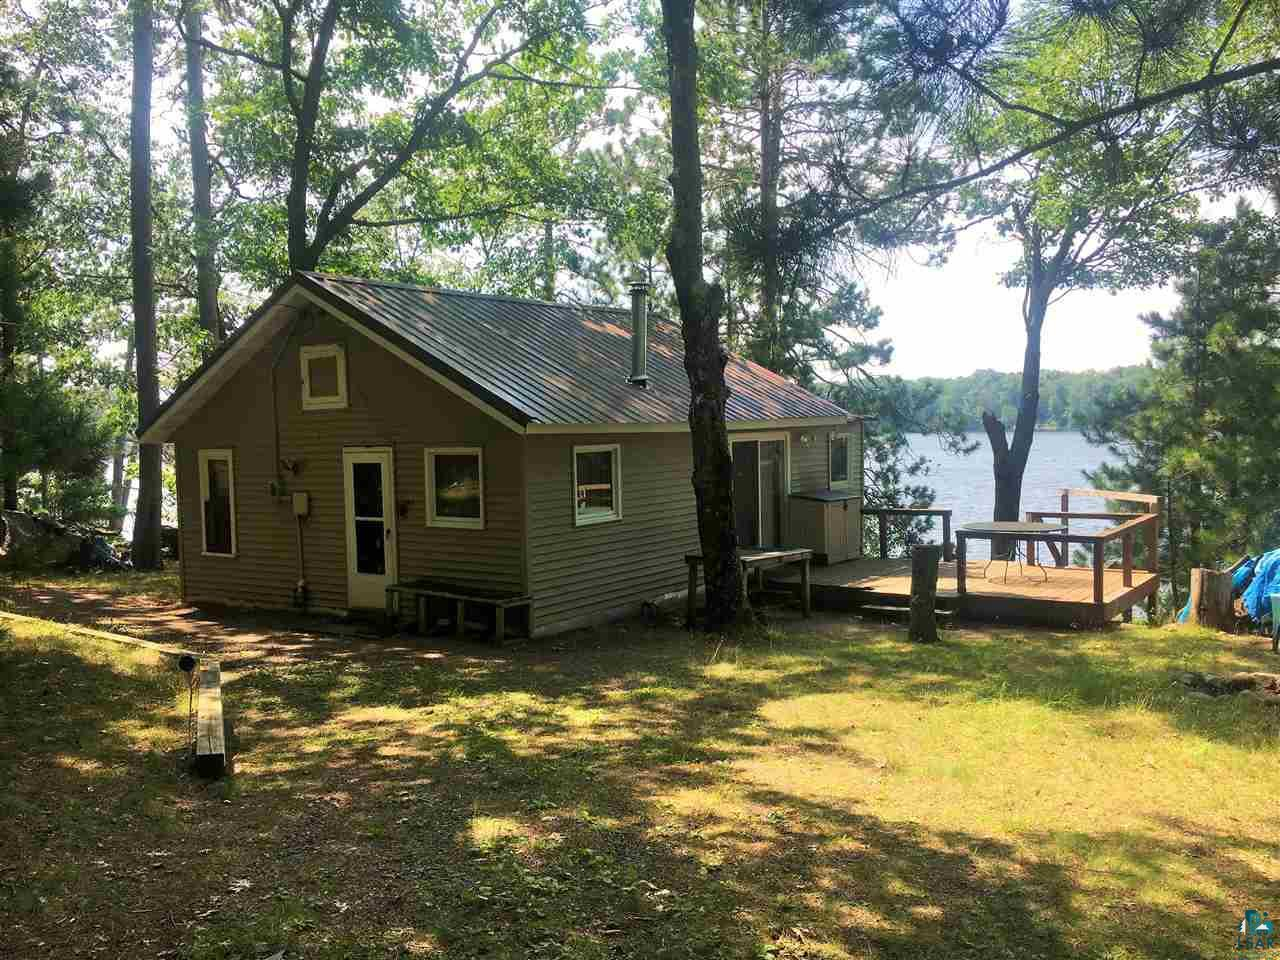 Rustic 2 bedroom, 1 bath cabin with deck, dock and one car garage on Deep Lake. Beautifully wooded 100' lot features sandy swimming frontage with afternoon sun. Small wood stove is perfect for taking the chill out on cool evenings.